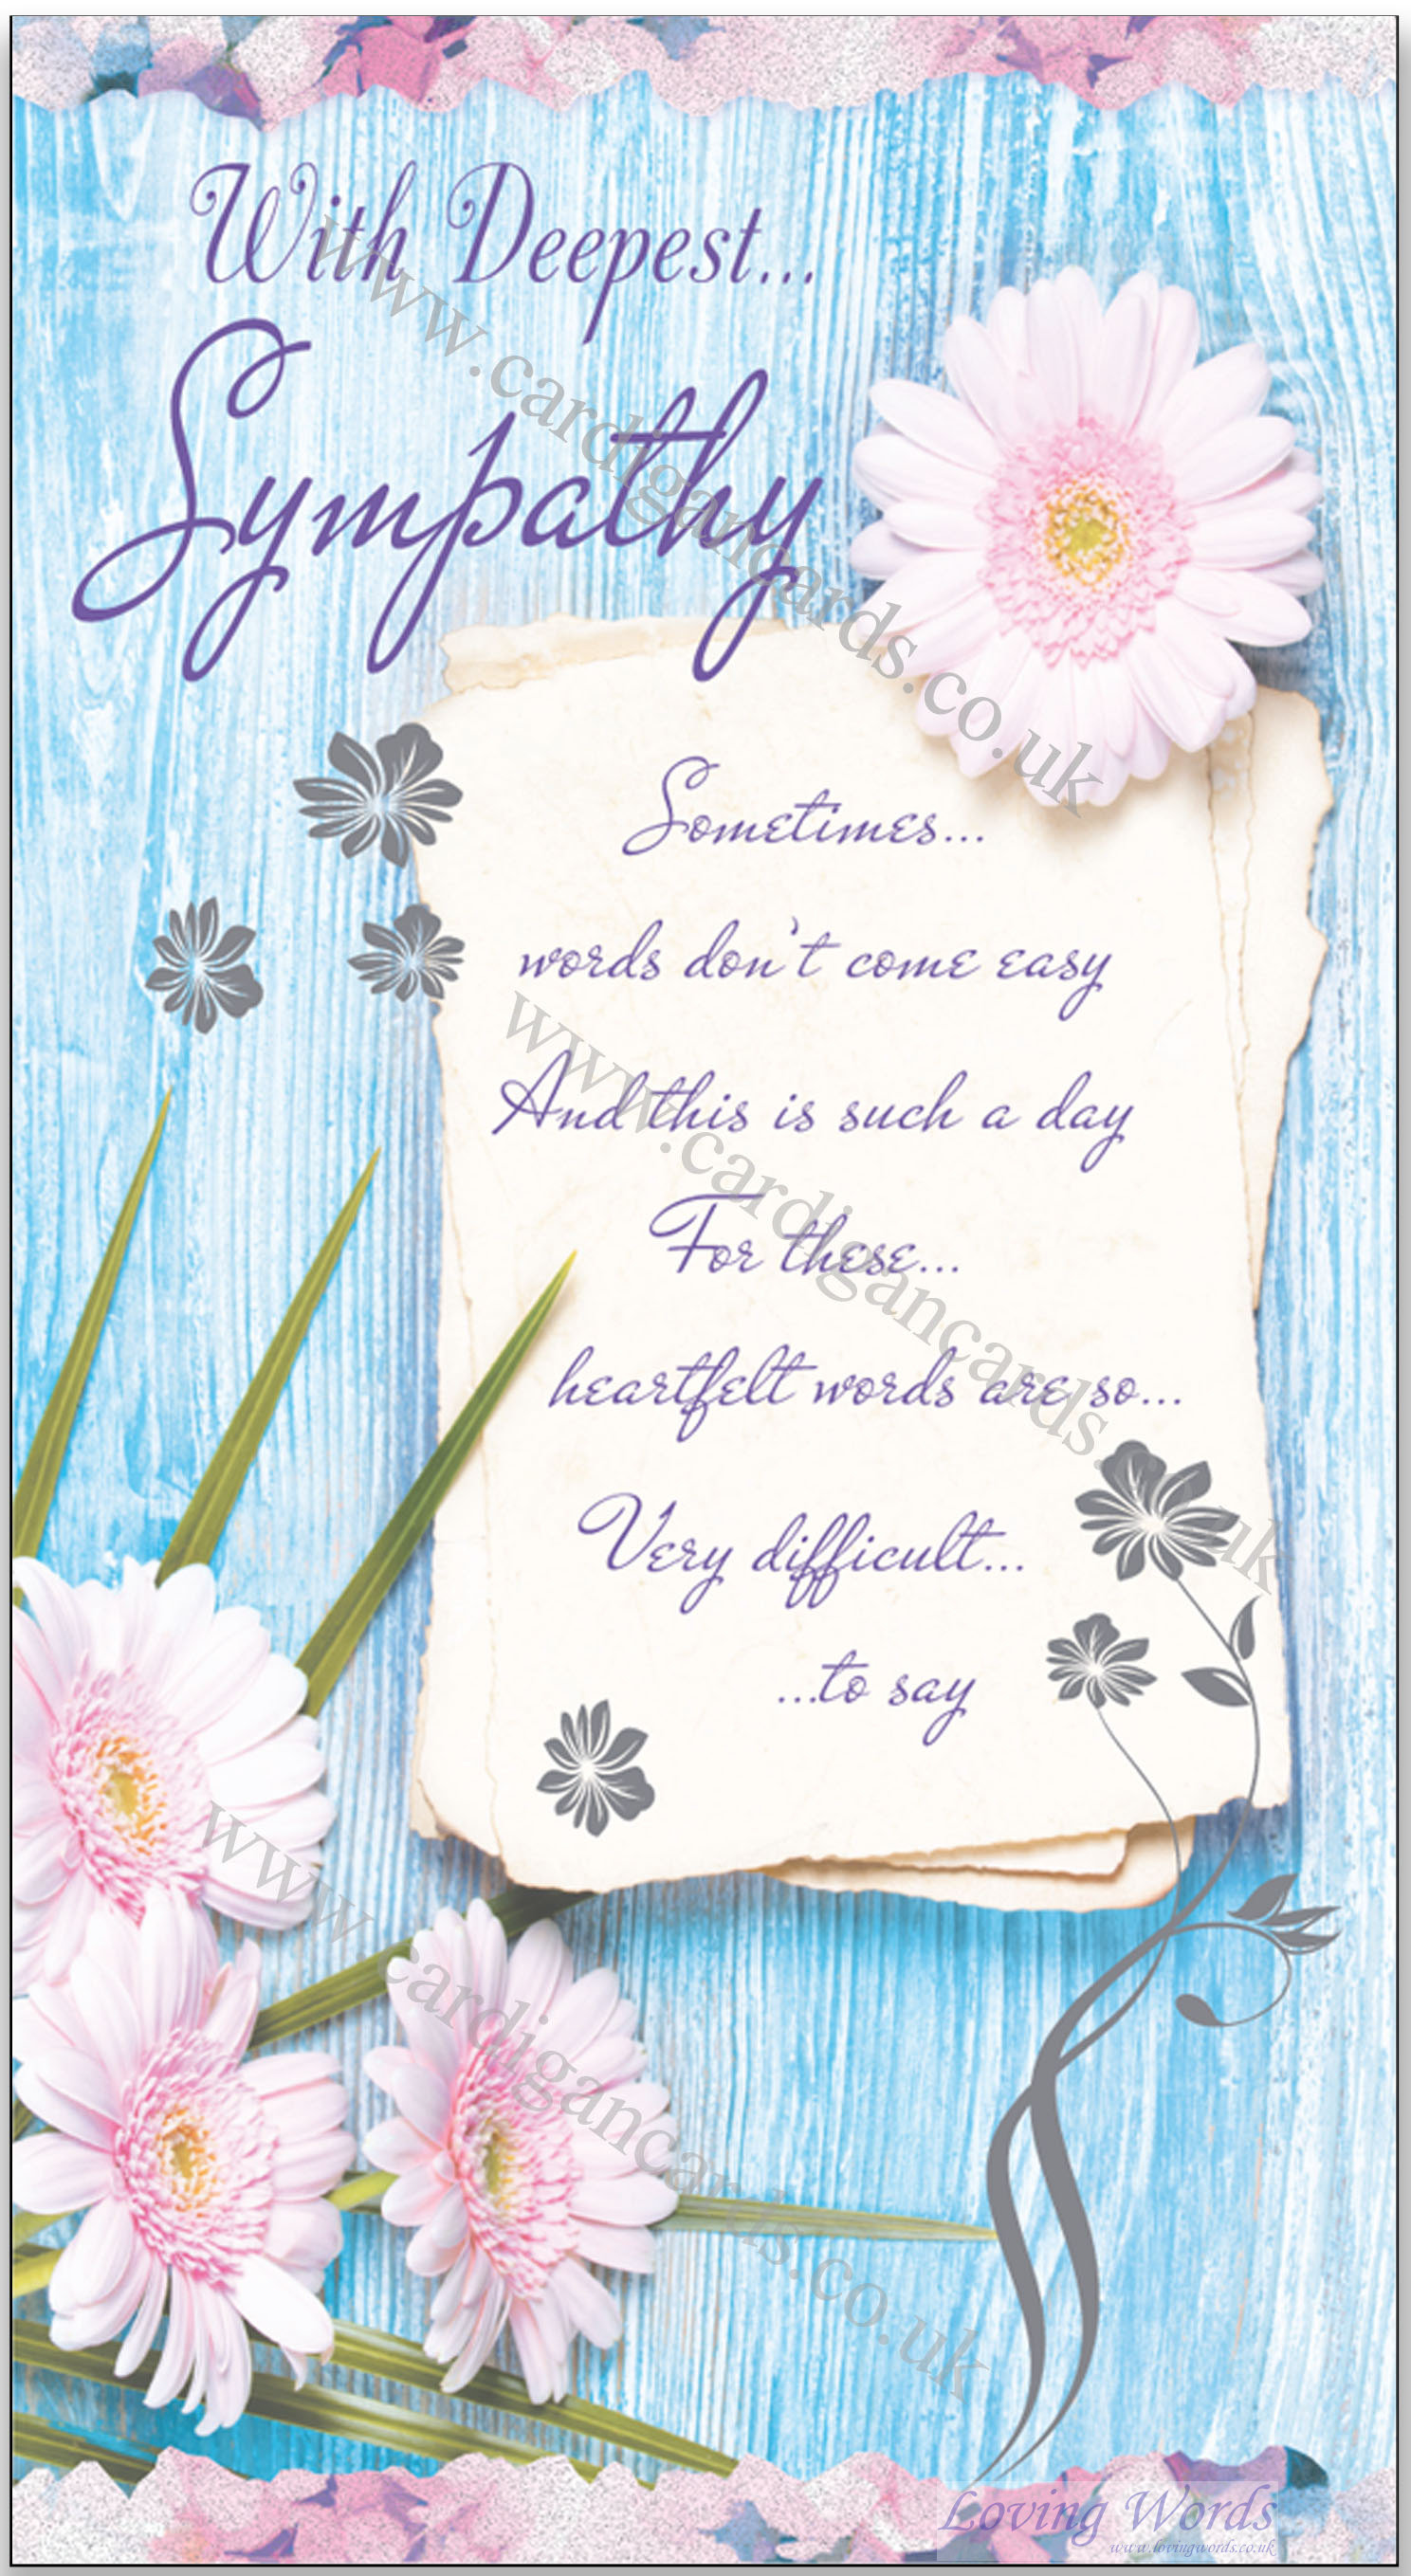 Deepest sympathy greeting cards by loving words personalised greeting cards kristyandbryce Images